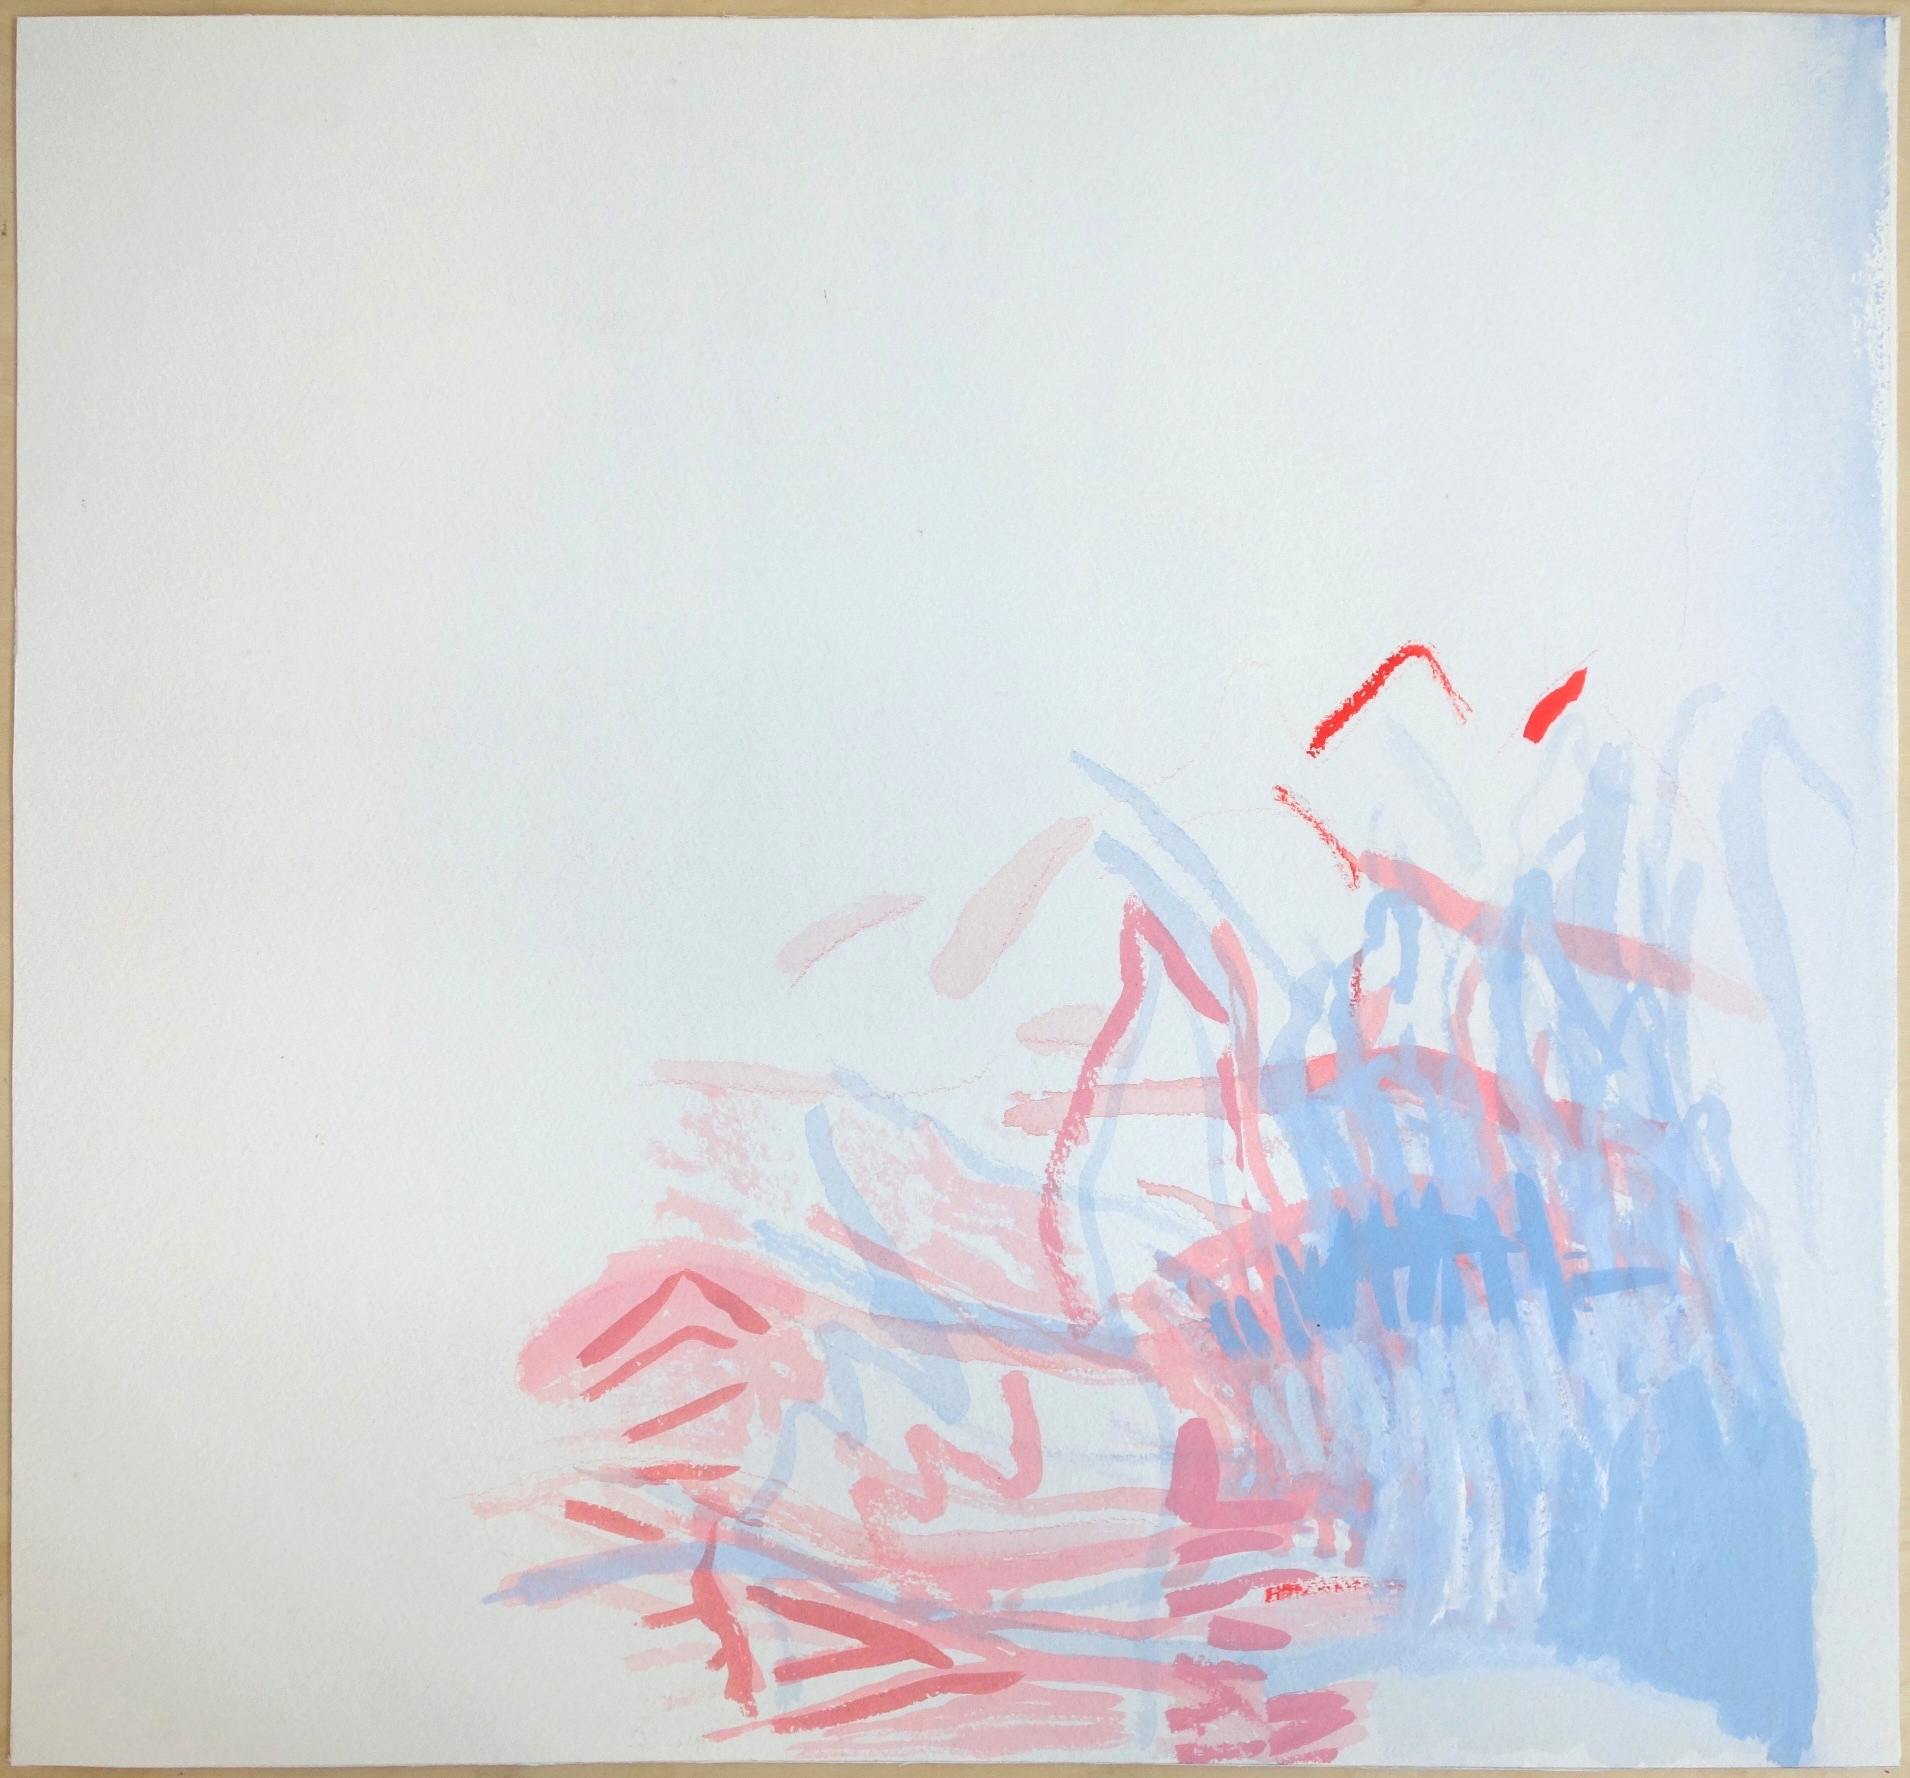 (Untitled) (2014). Gouache on Paper. 23x21.25 in.